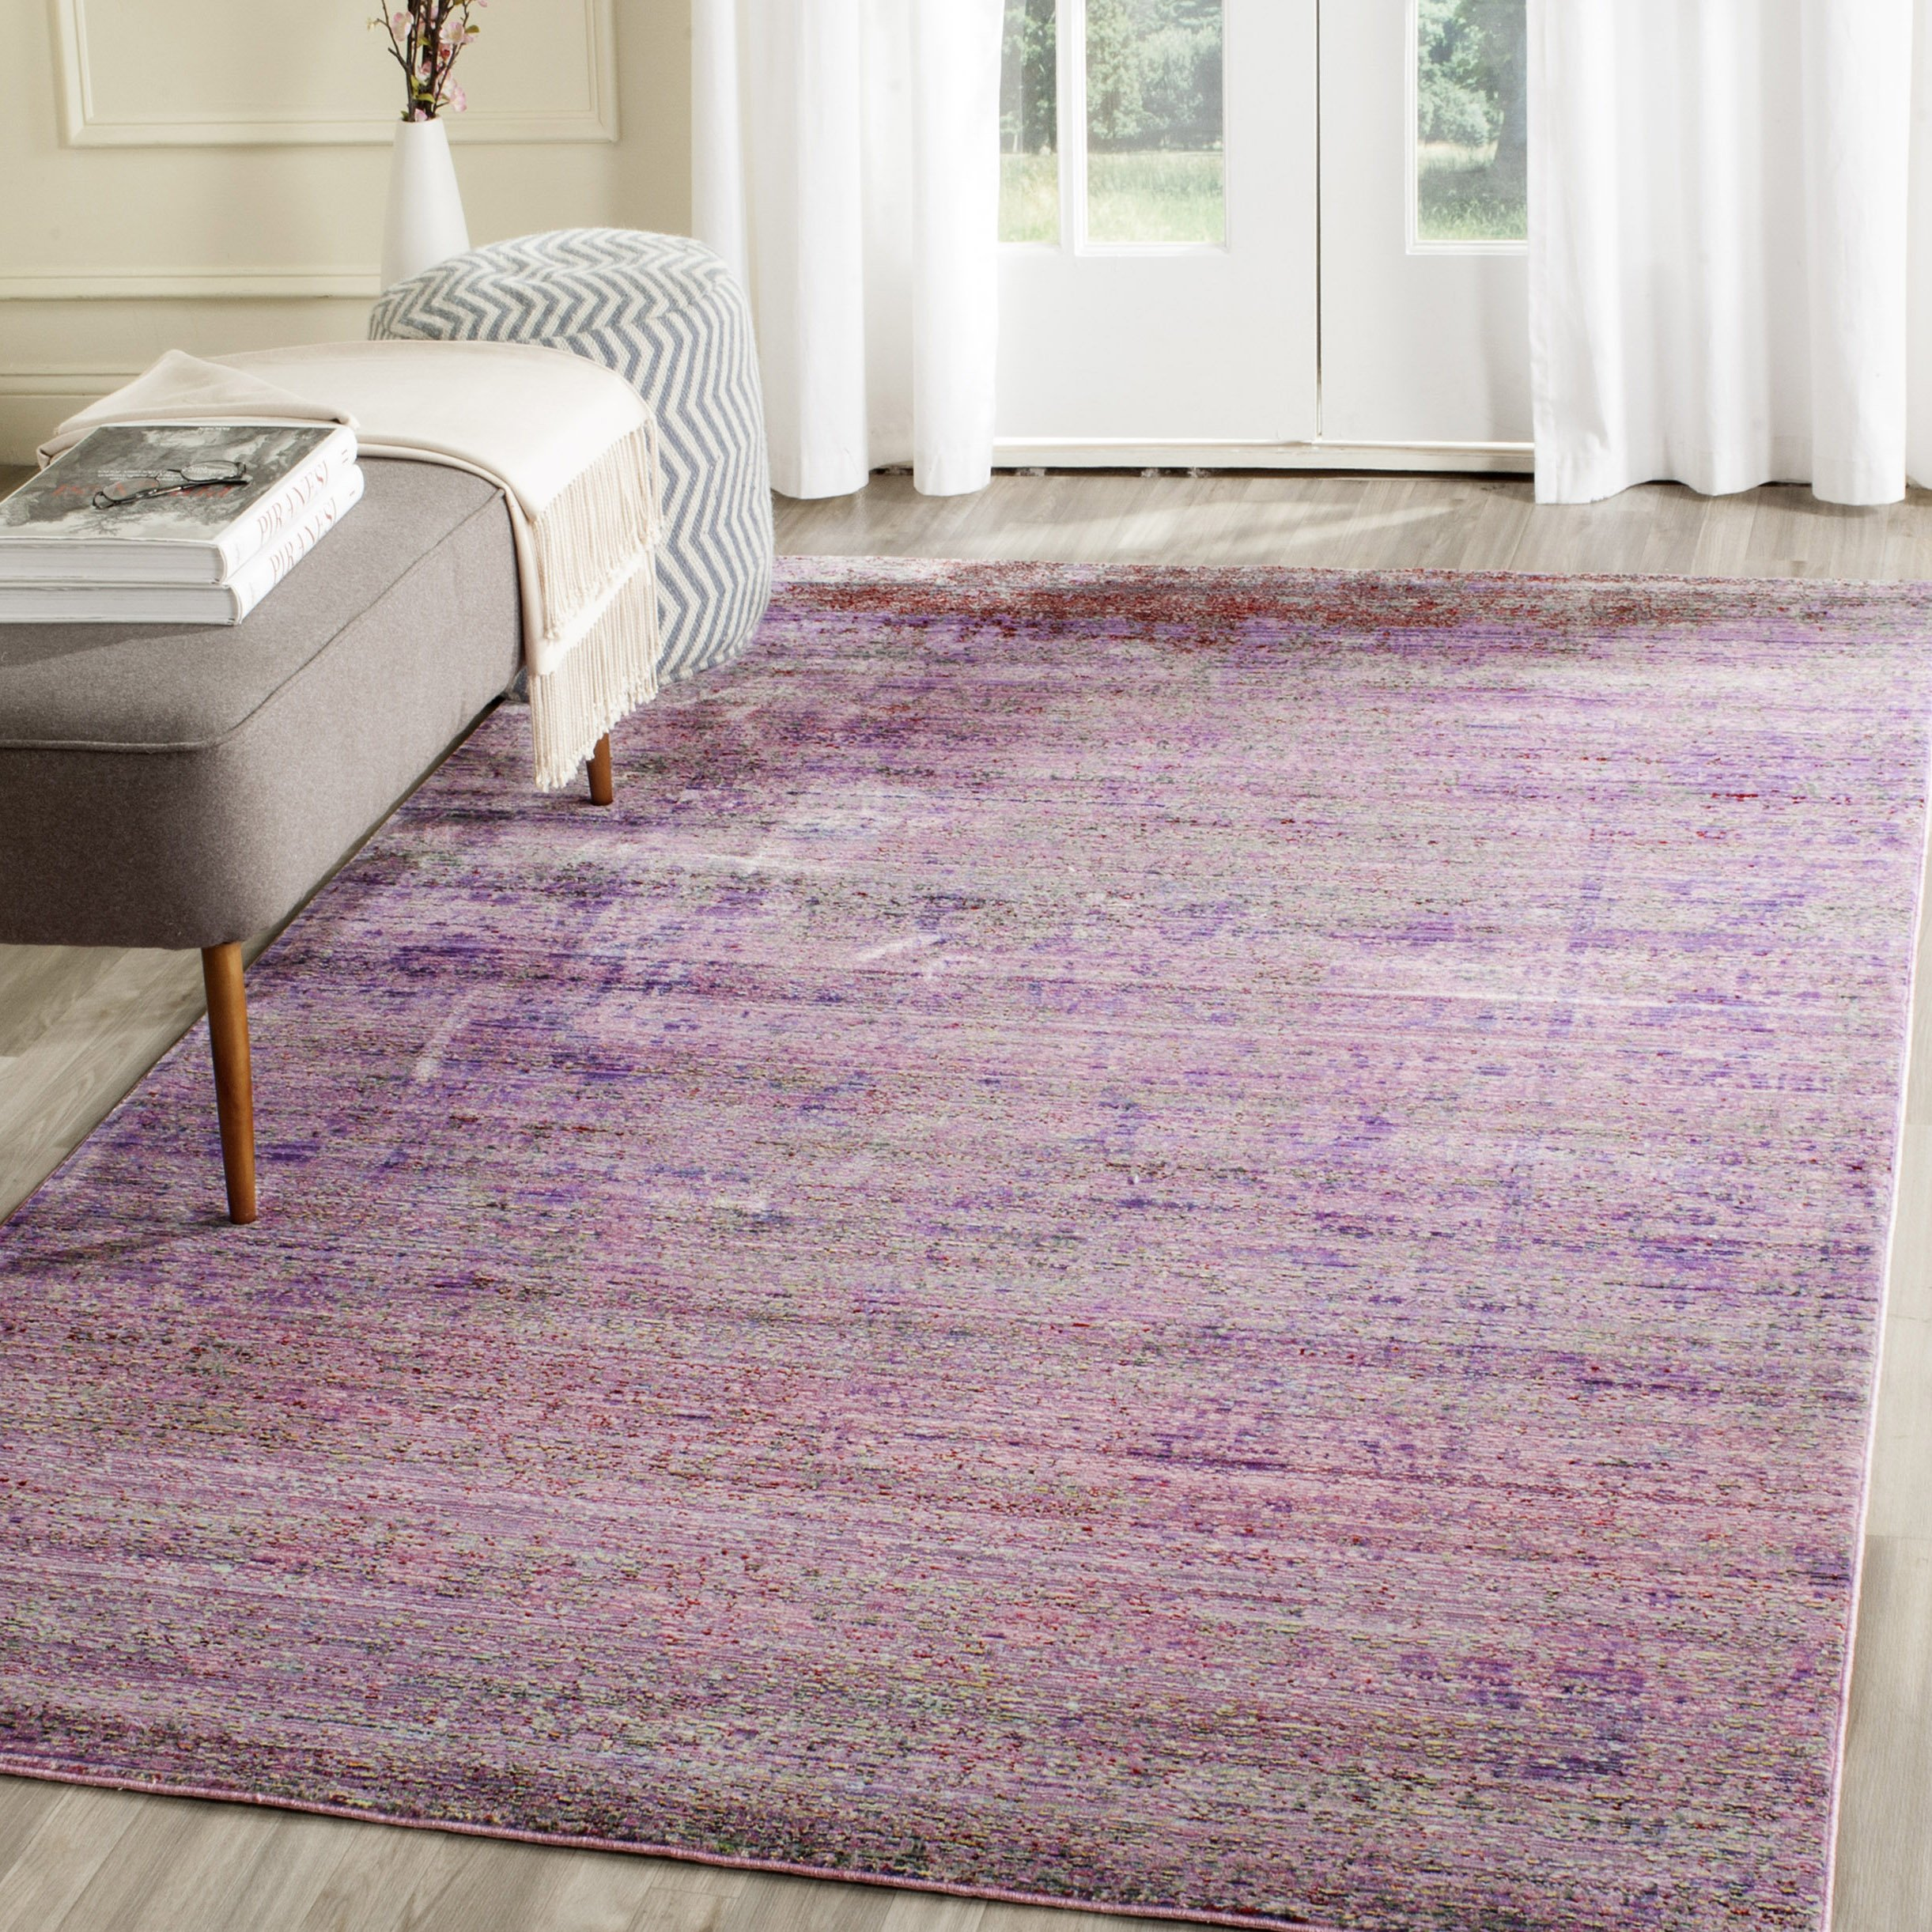 Safavieh Valencia Collection VAL203N Lavender and Multi Distressed Watercolor Silky Polyester Area Rug (10' x 14')